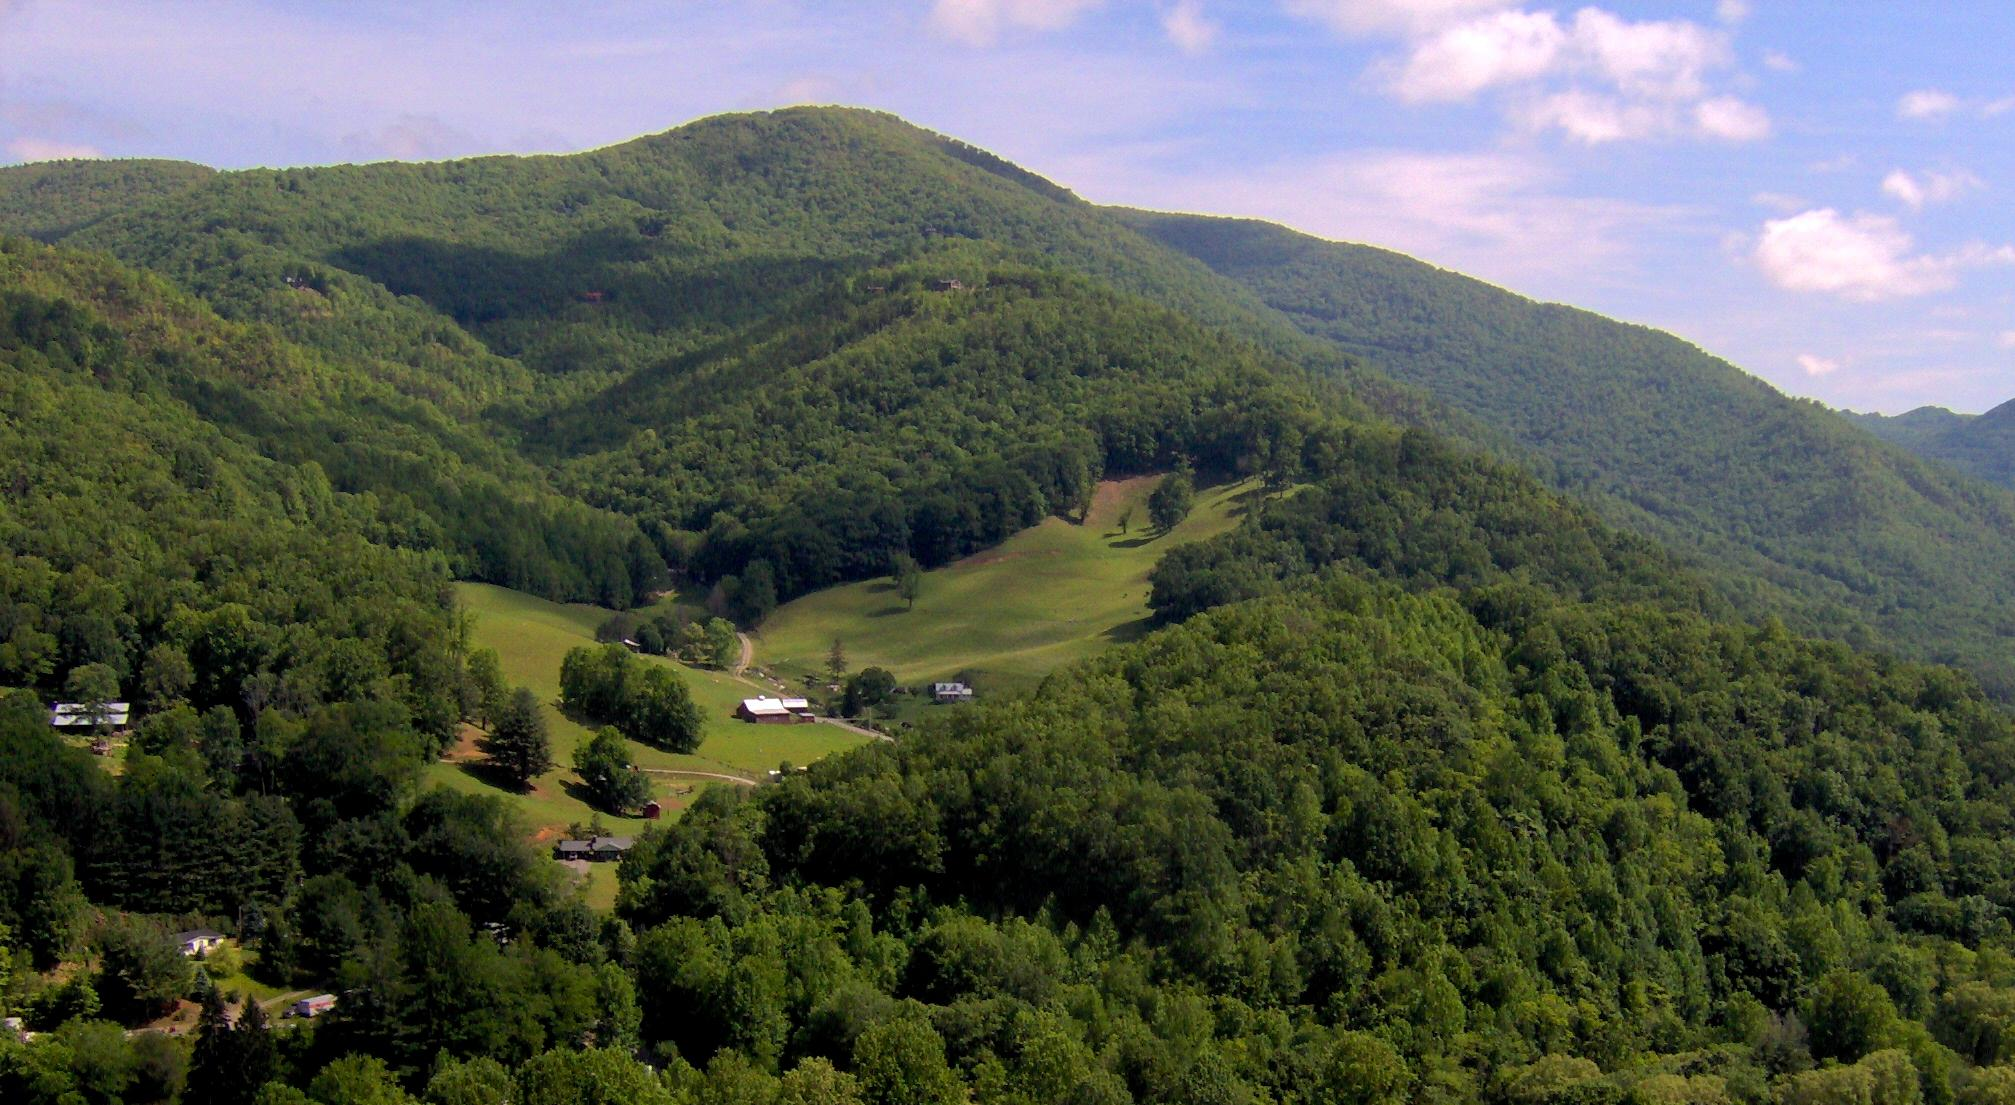 region/background-images/appalachia_view.jpg